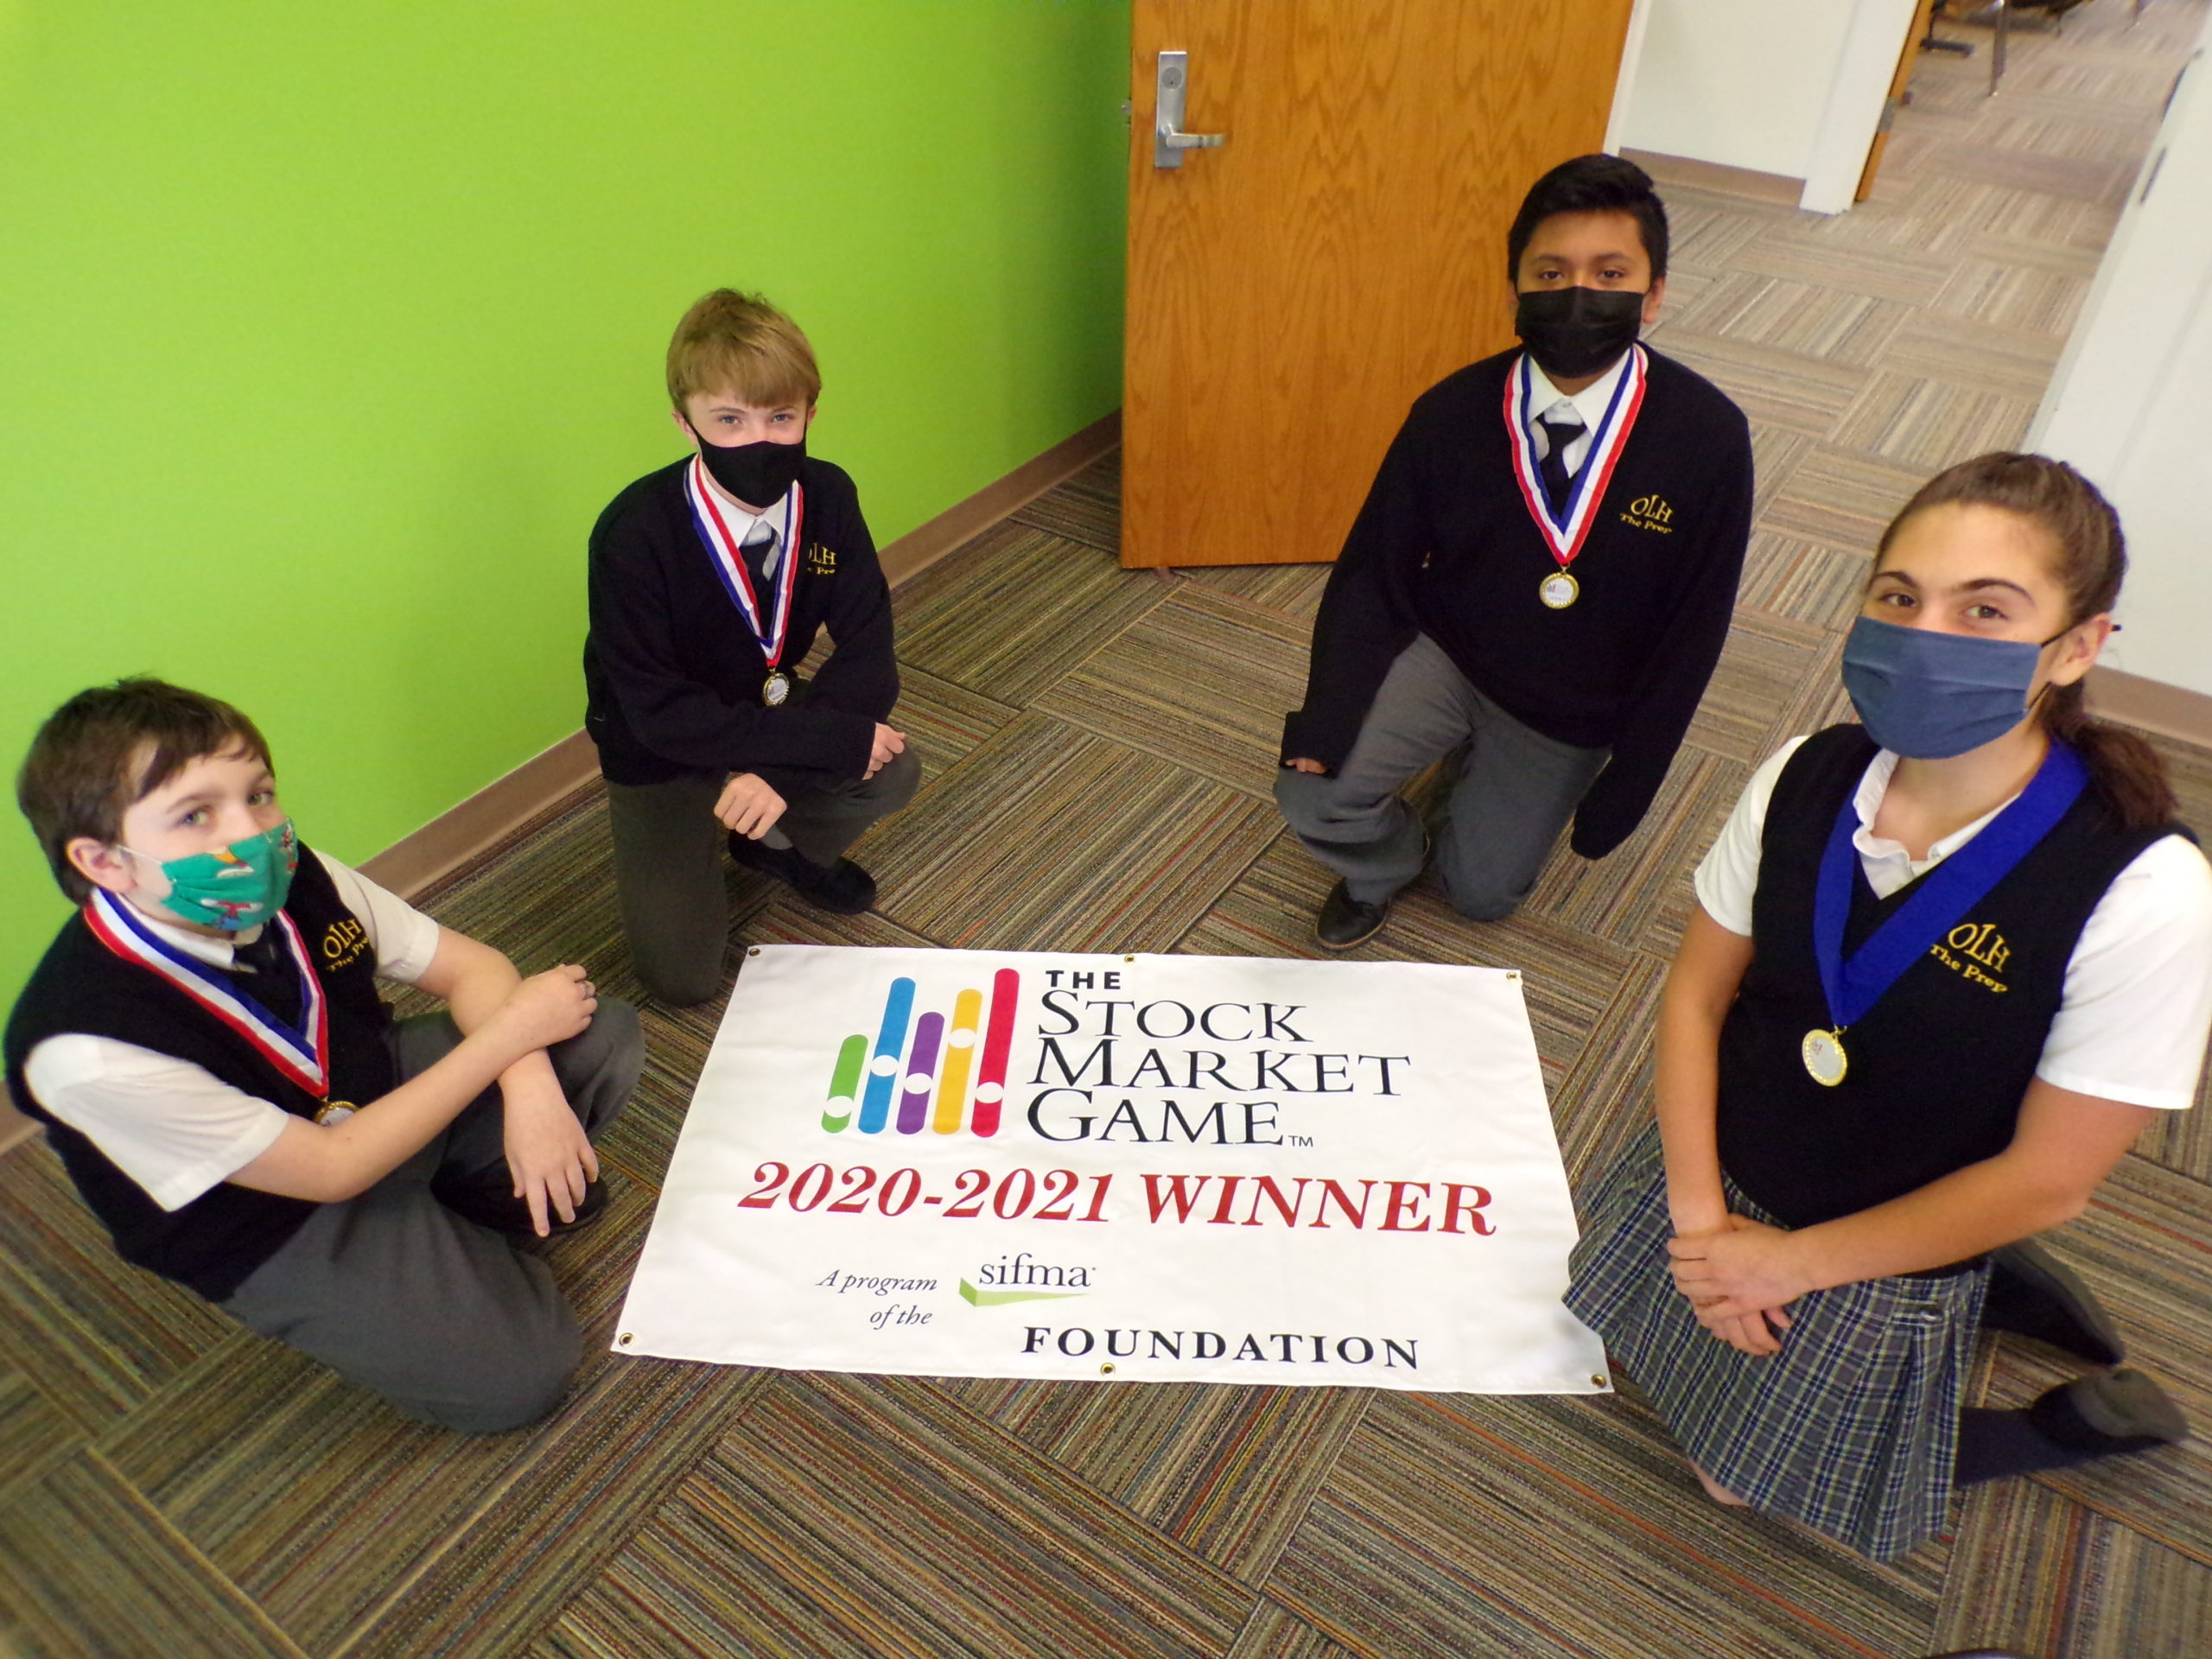 (From left to right) Luke David, George McDonald, Jake Morales and Maxine Boeding. Maxine placed first place in the SIFMA Foundation's Stock Market Game, with the rest of the students taking a second place award.